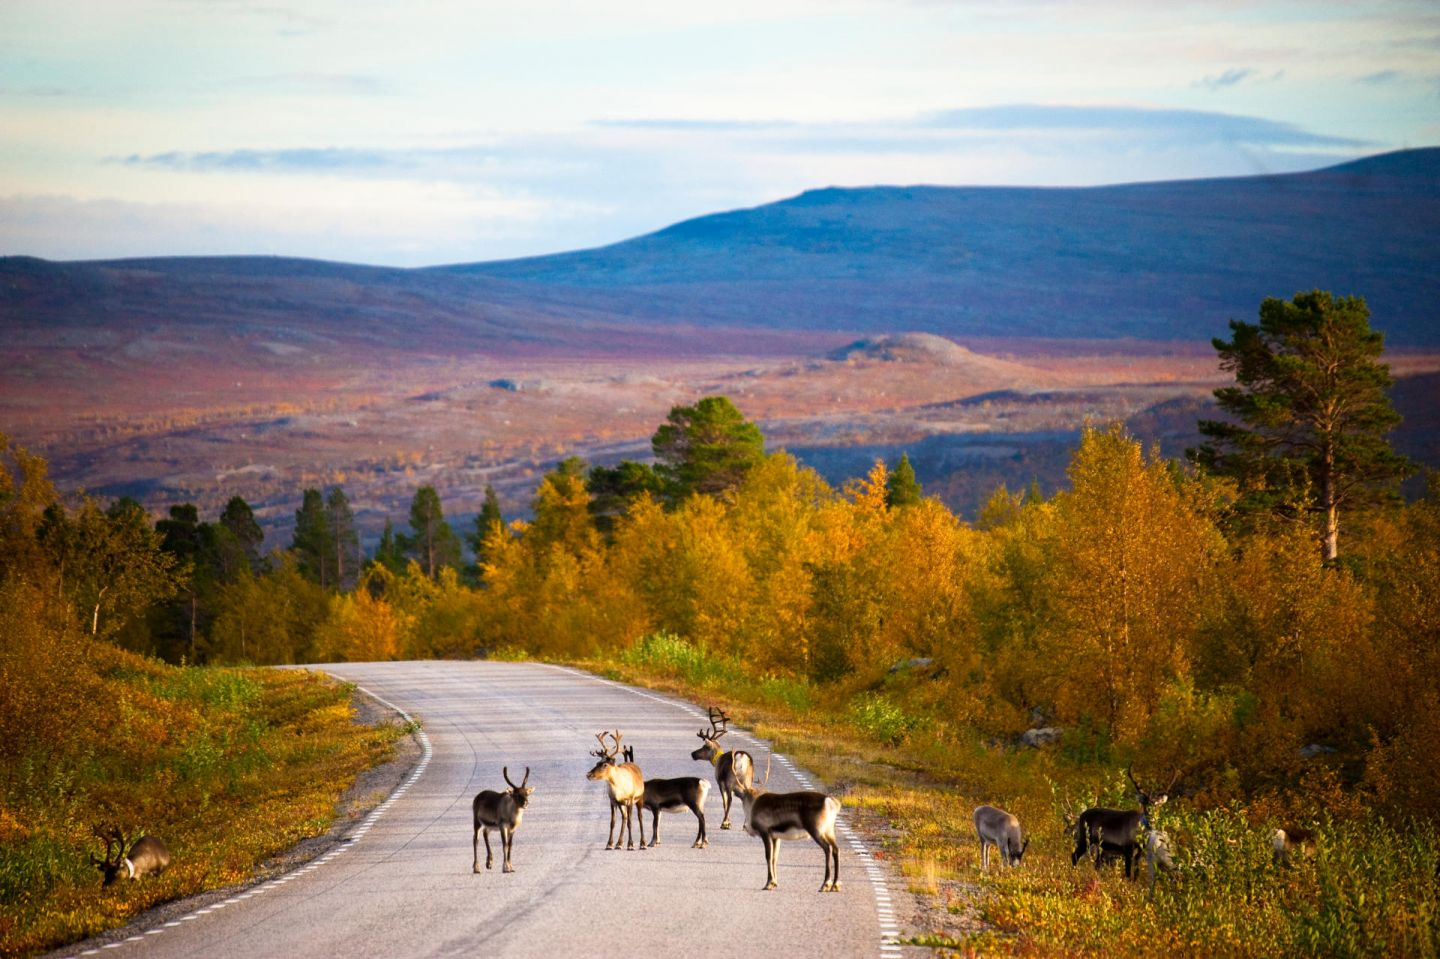 Reindeer on the road in Lapland